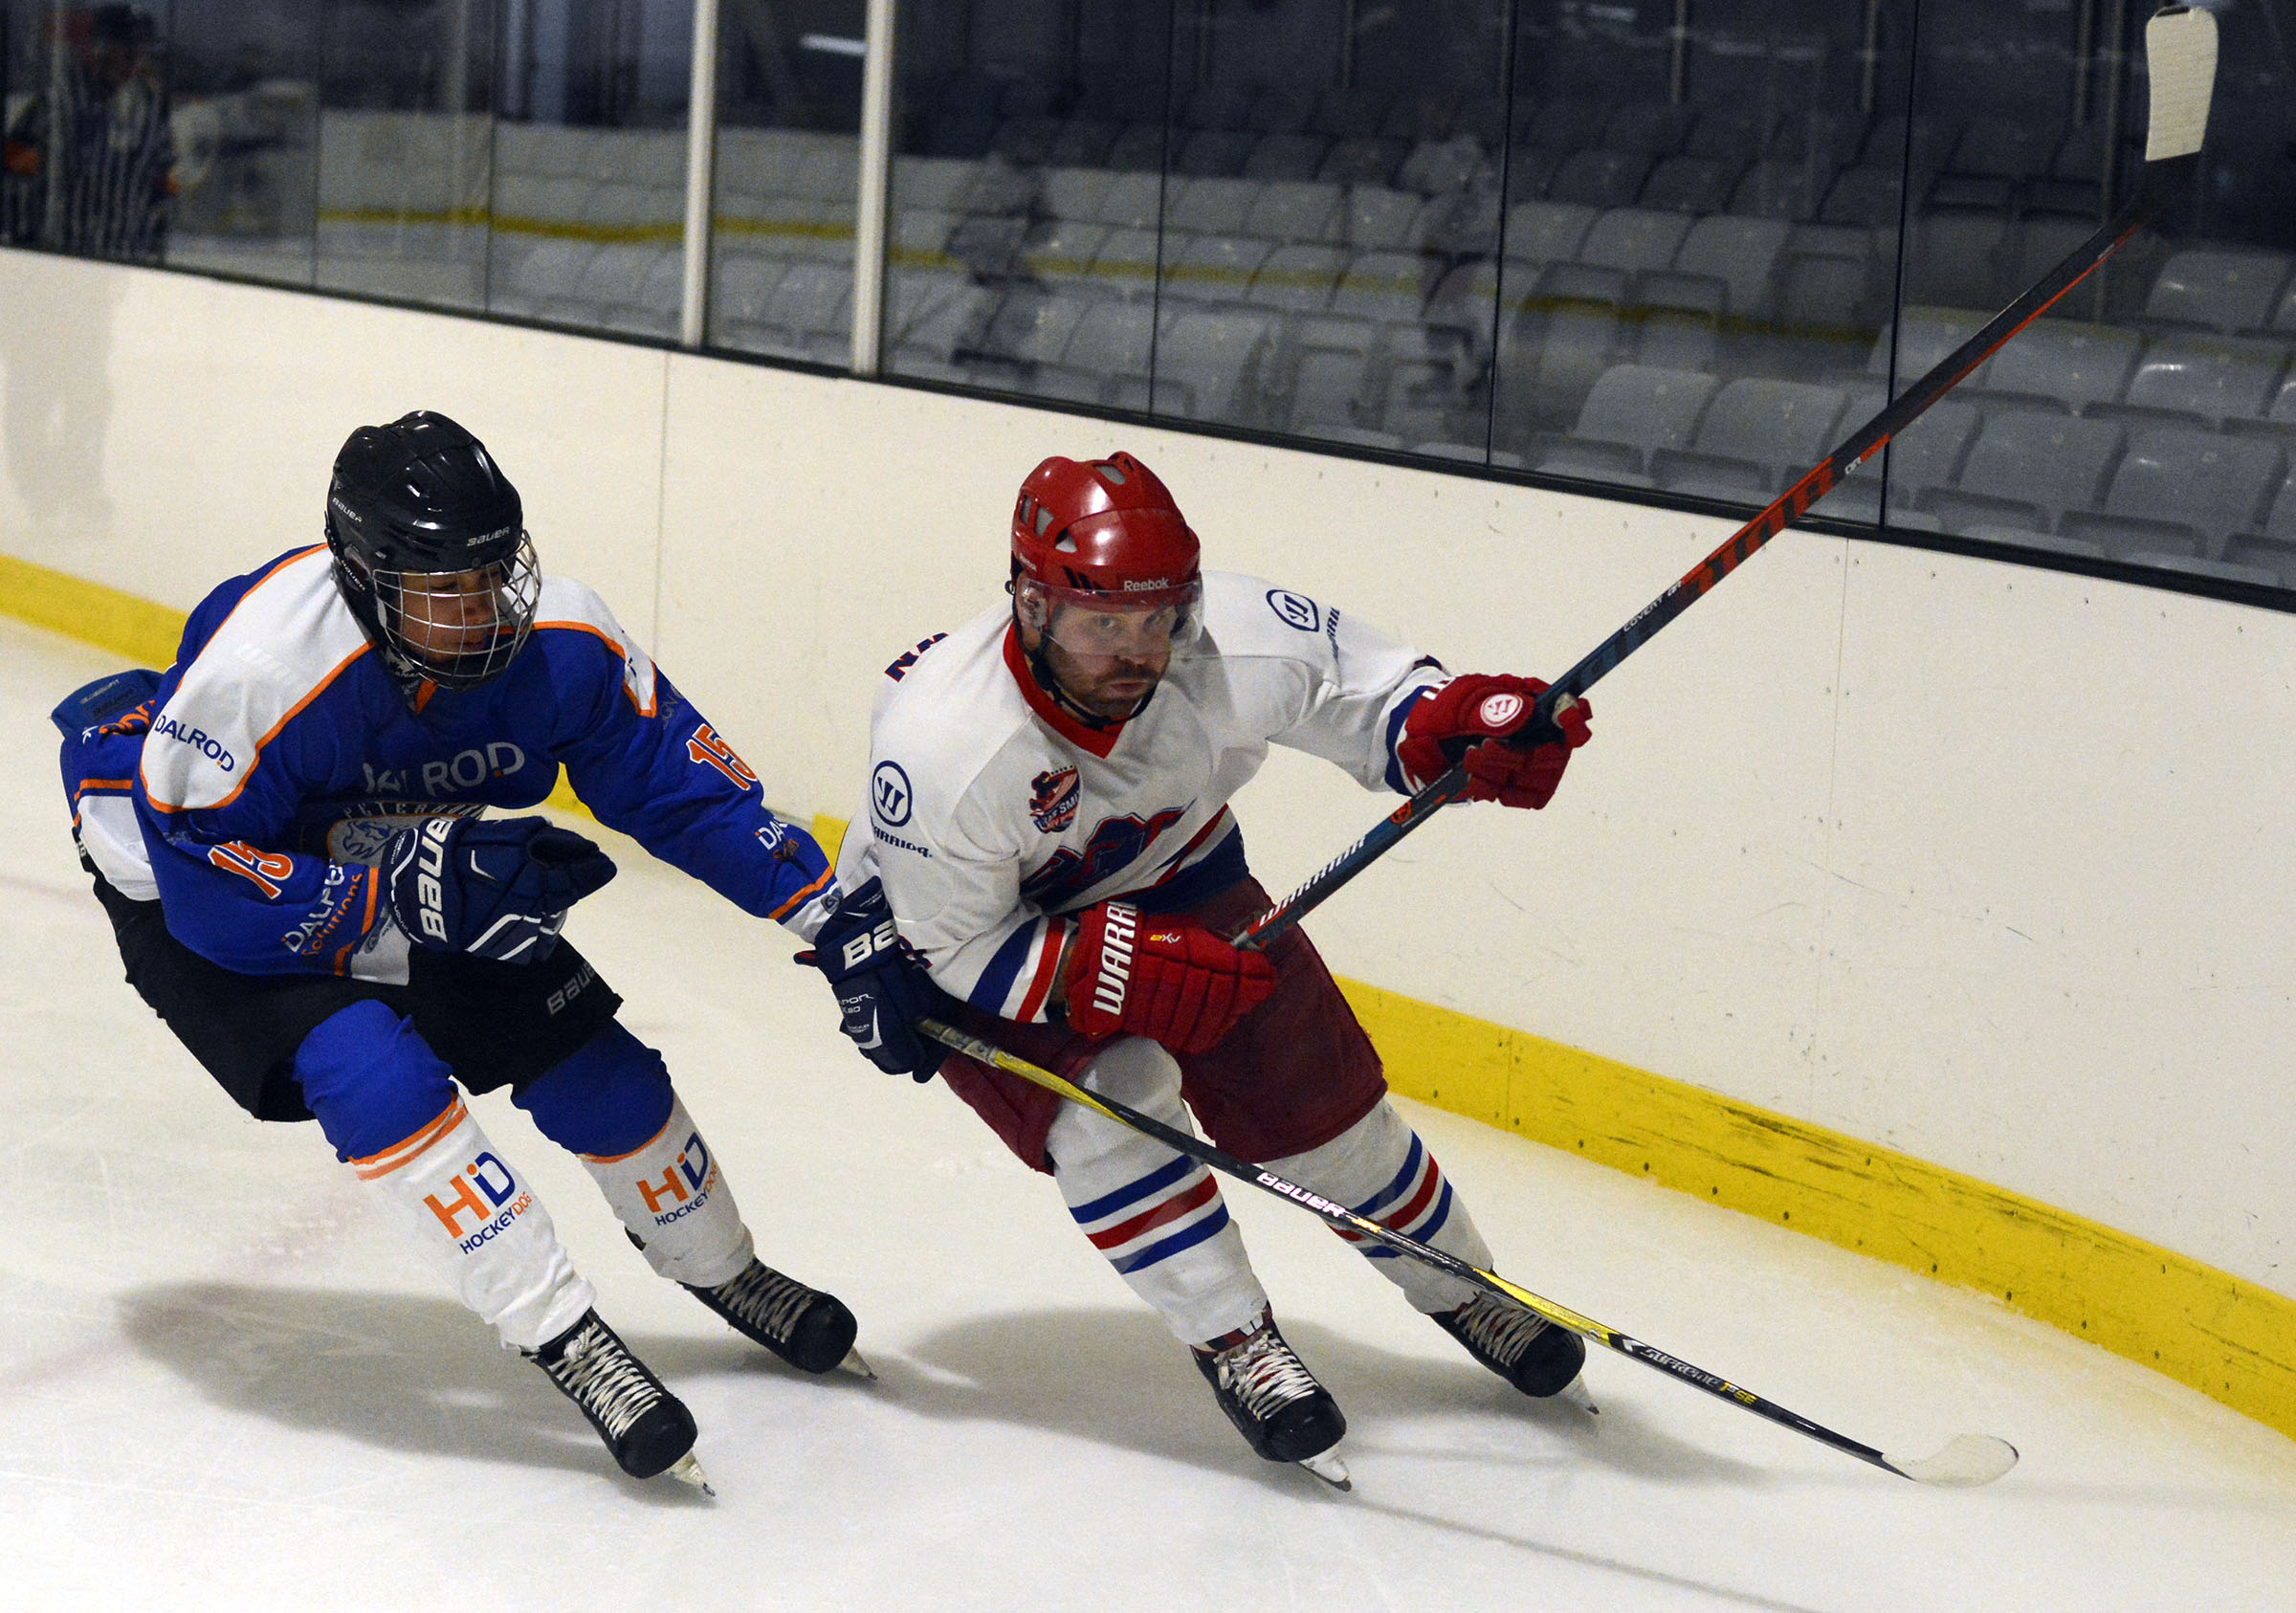 Slough Jets (white and red) beat Peterborough Phantoms 8-5 at the Slough Ice Rink on Saturday.